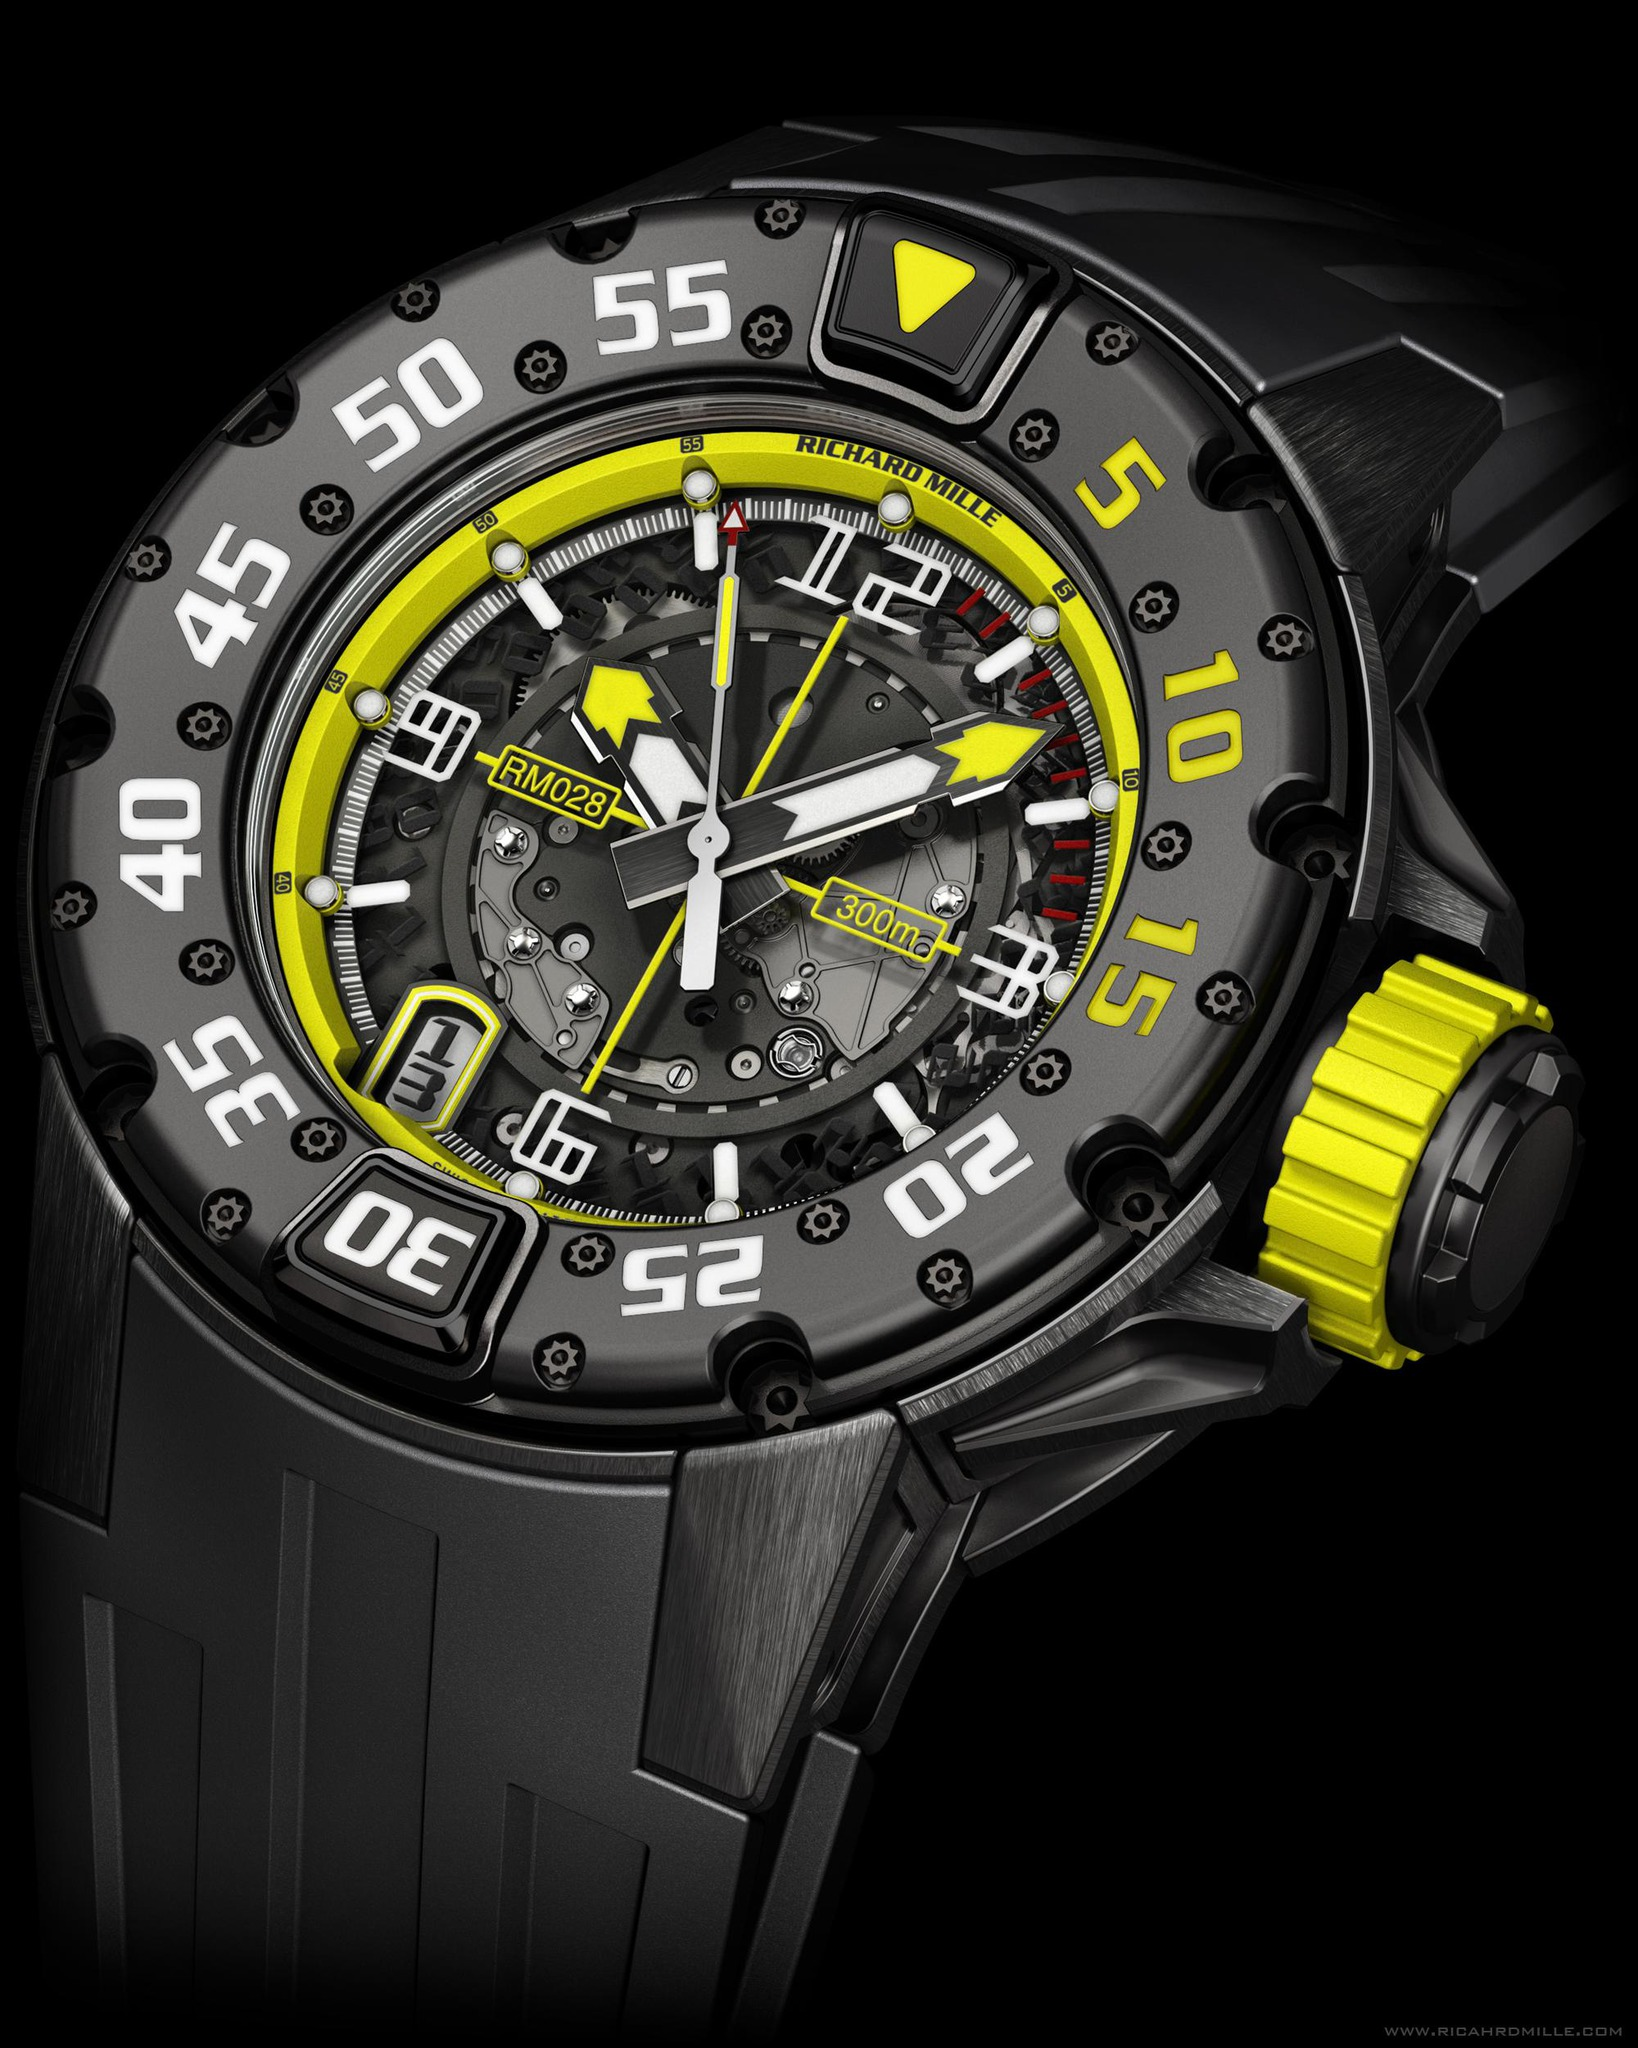 Replica Richard Mille RM 028 Diver Brazil Black Titanium Watch